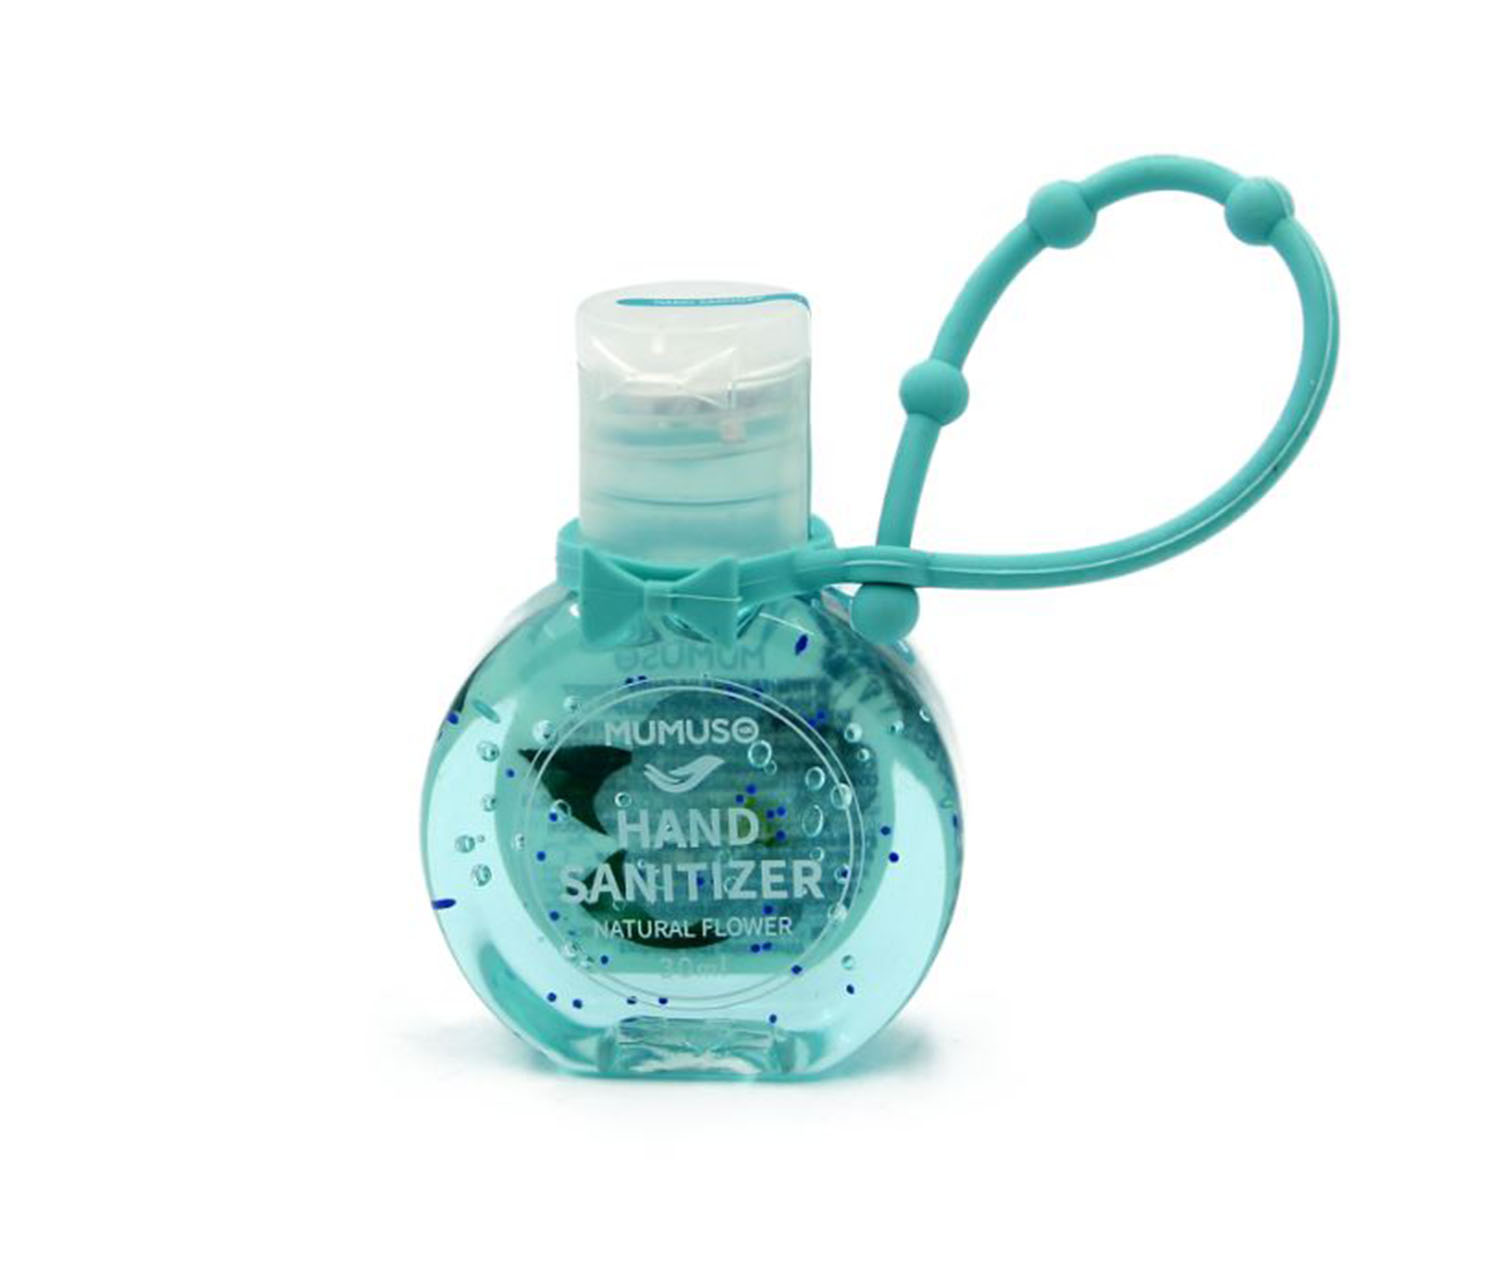 Hand Sanitizer Natural Flower, Blue